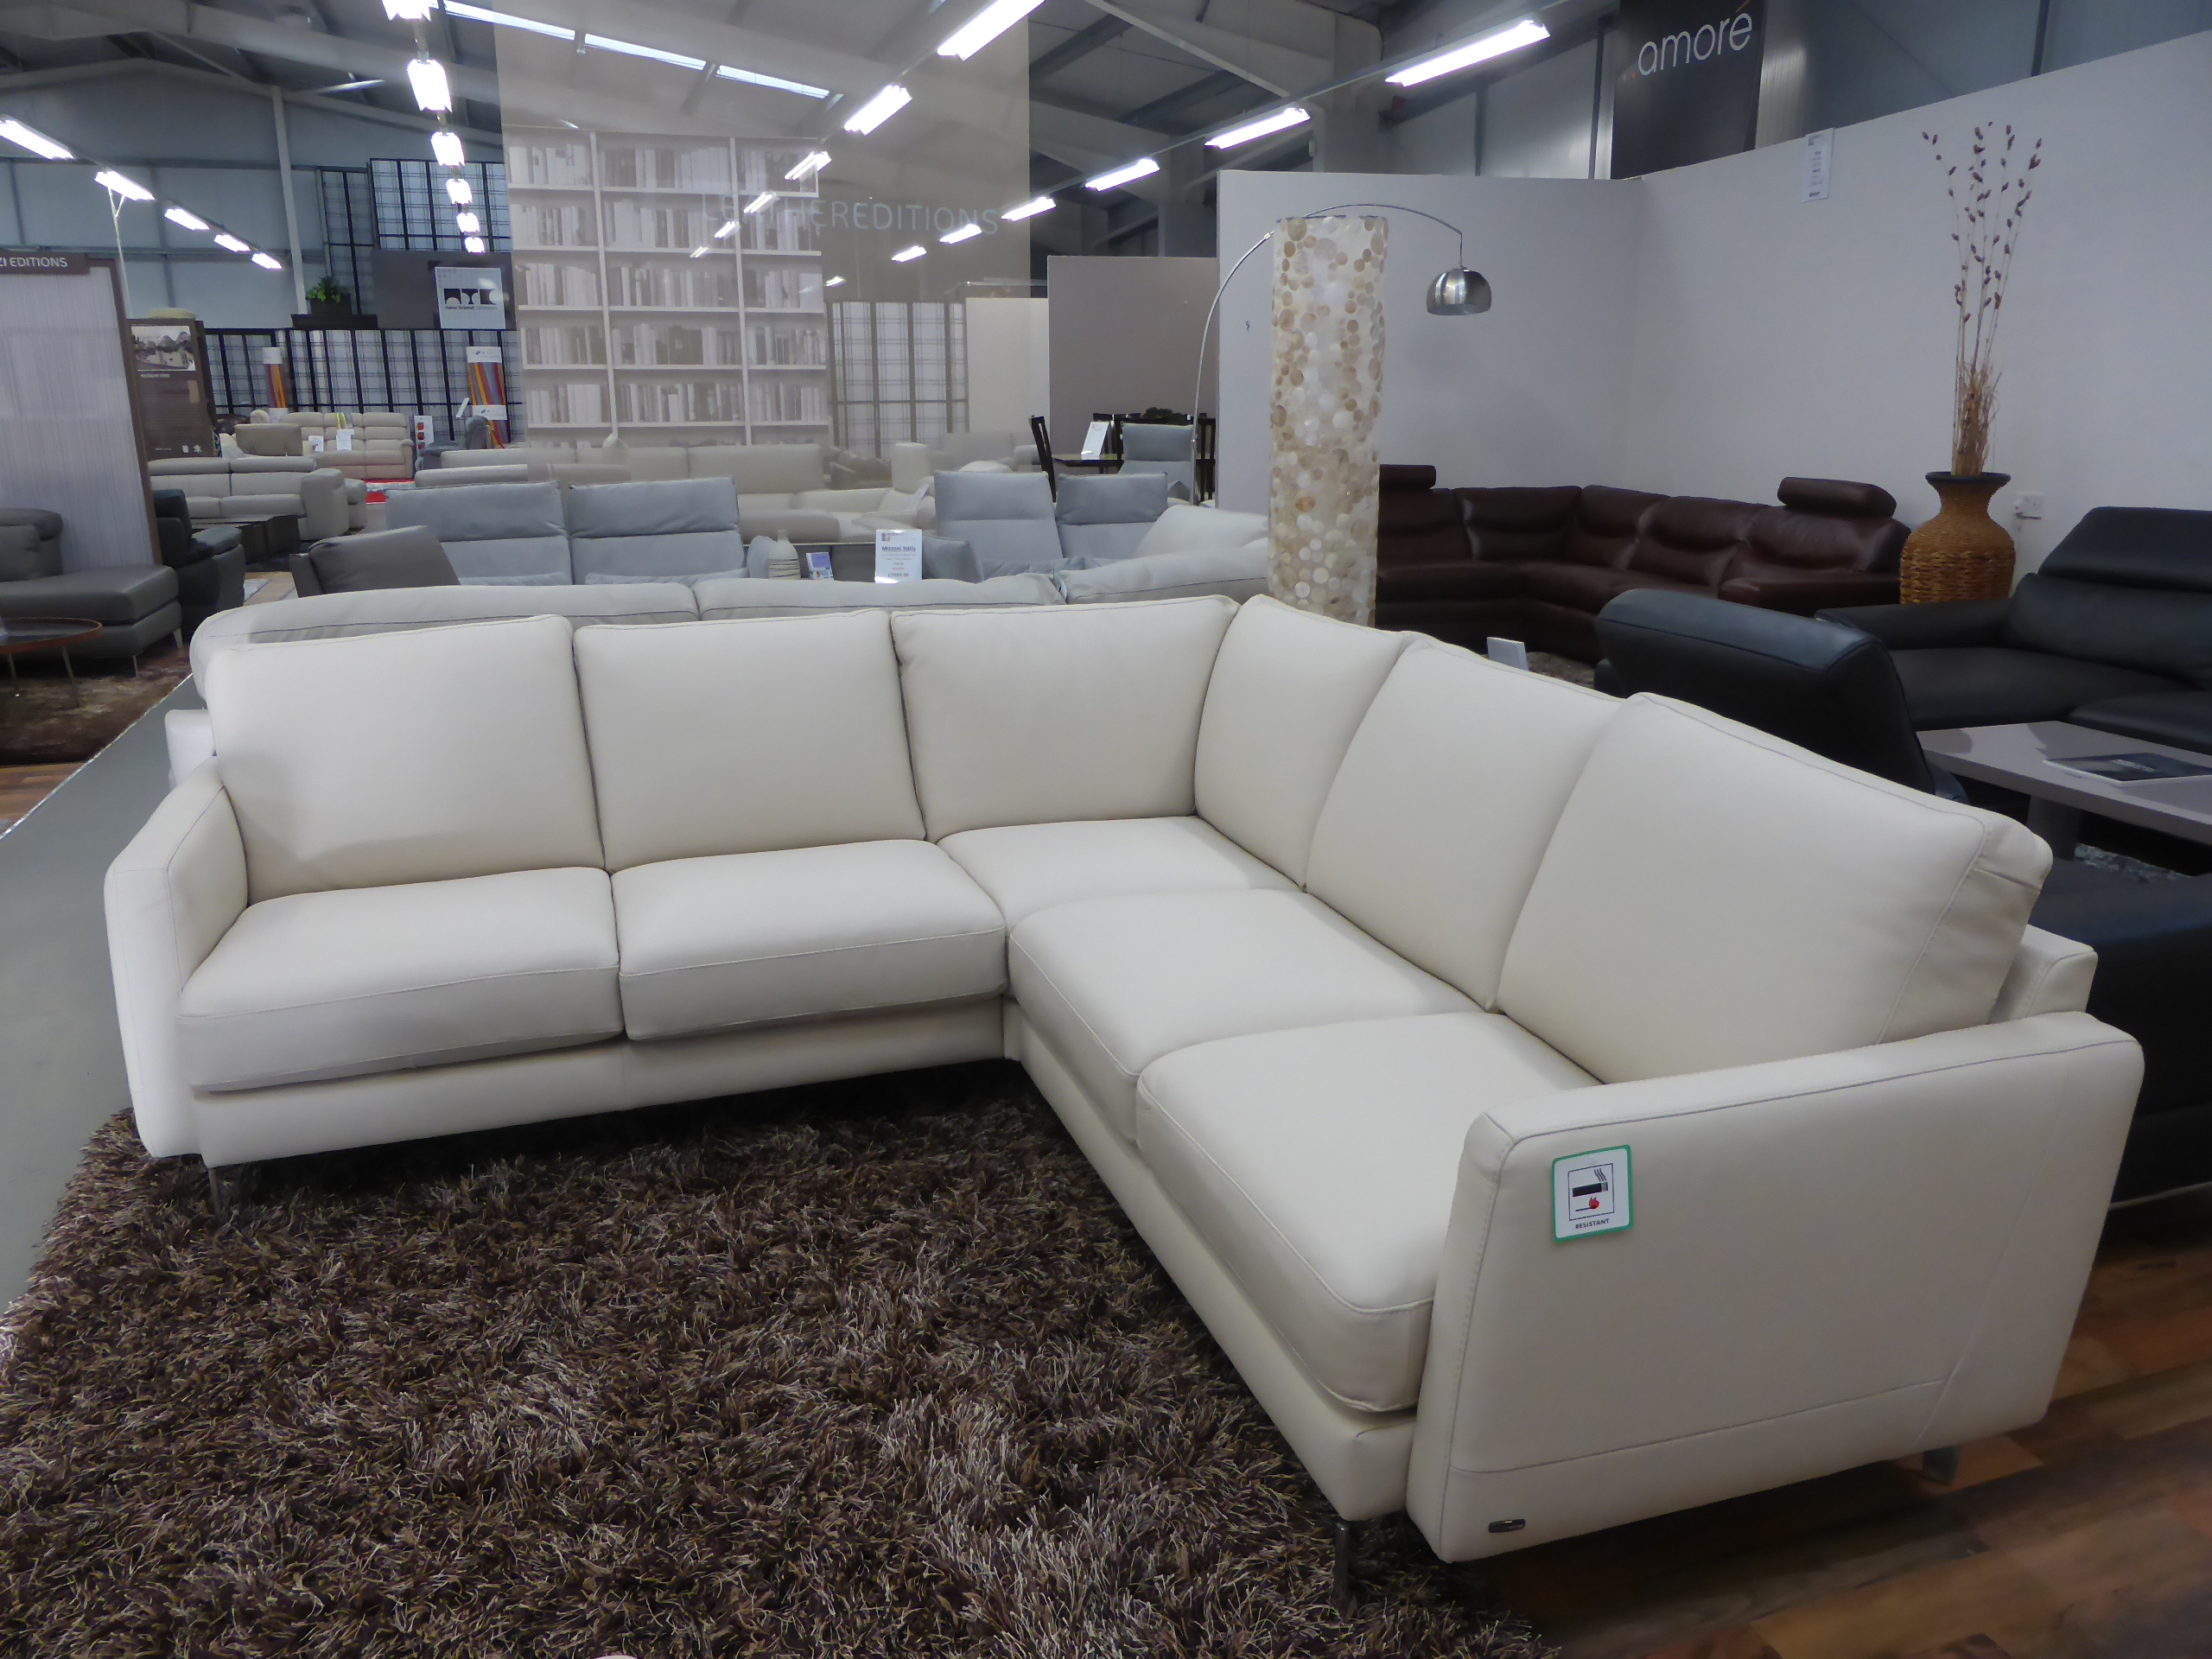 natuzzi sectional sofa connectors black recliner uk editions ercole b973 italian leather arm to